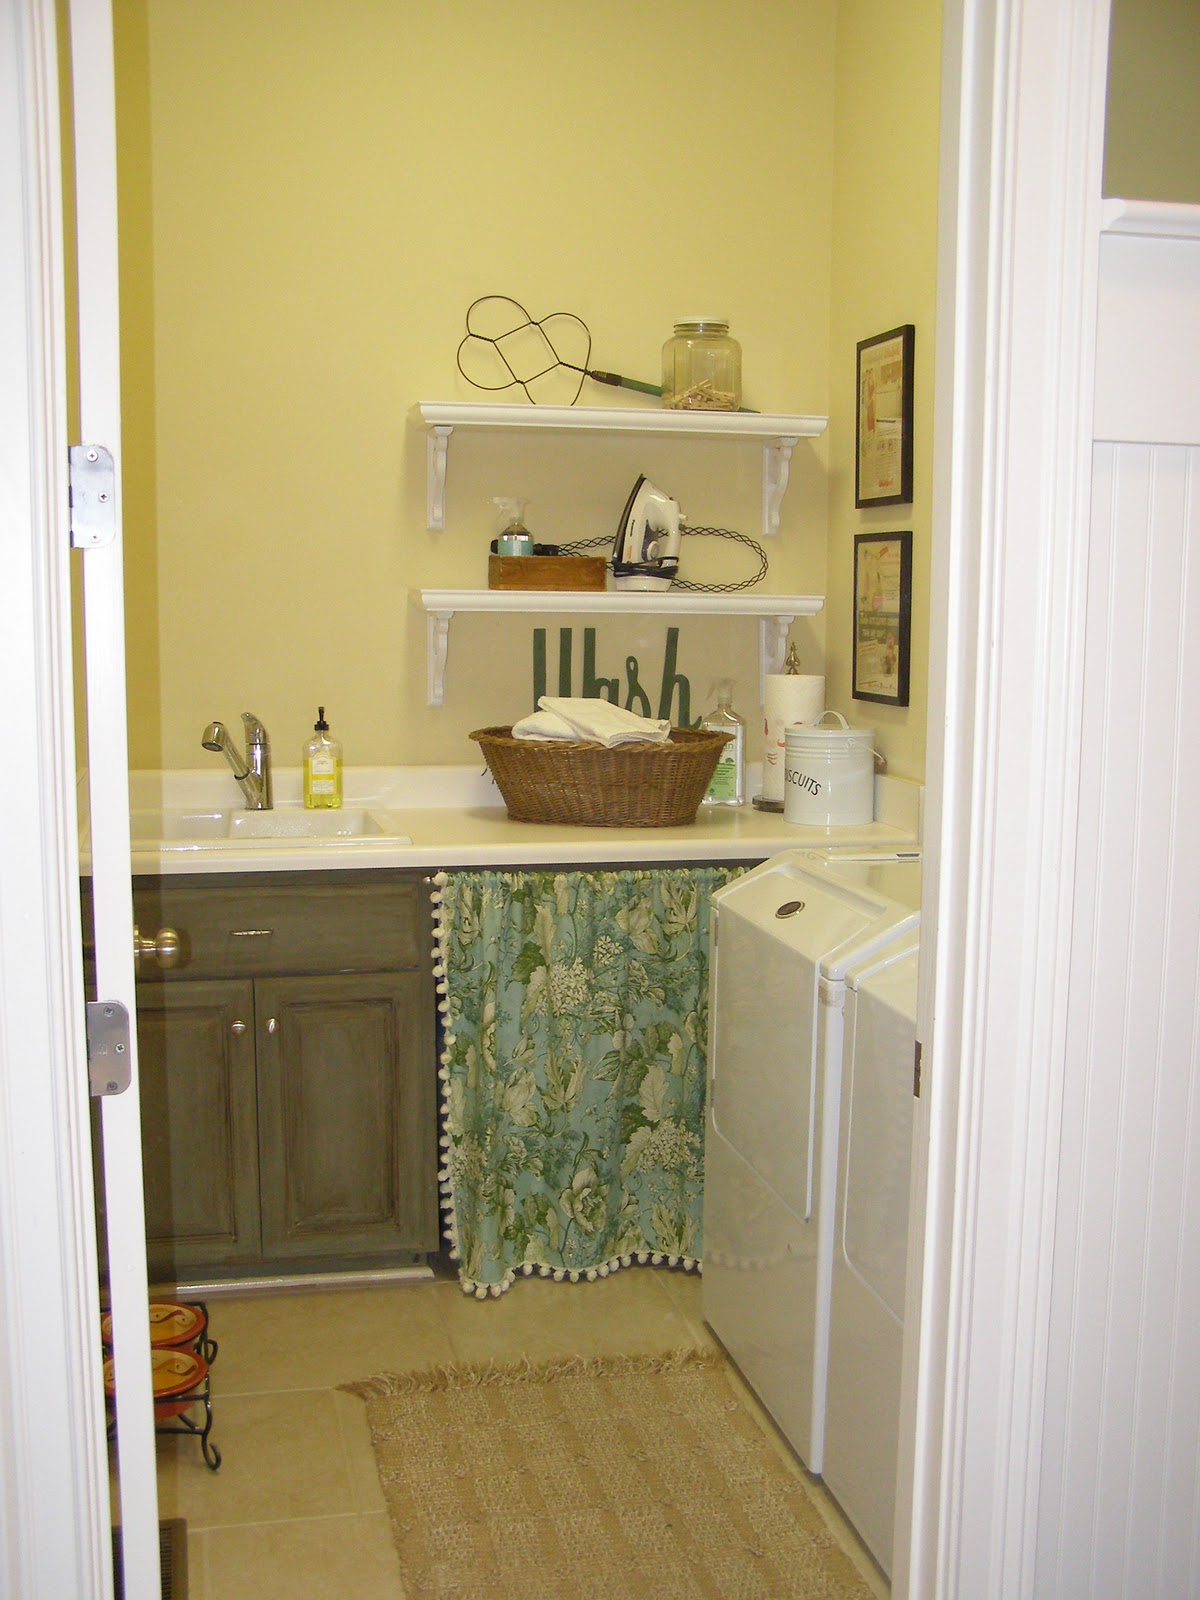 Laundry room shelves   davotanko home interior